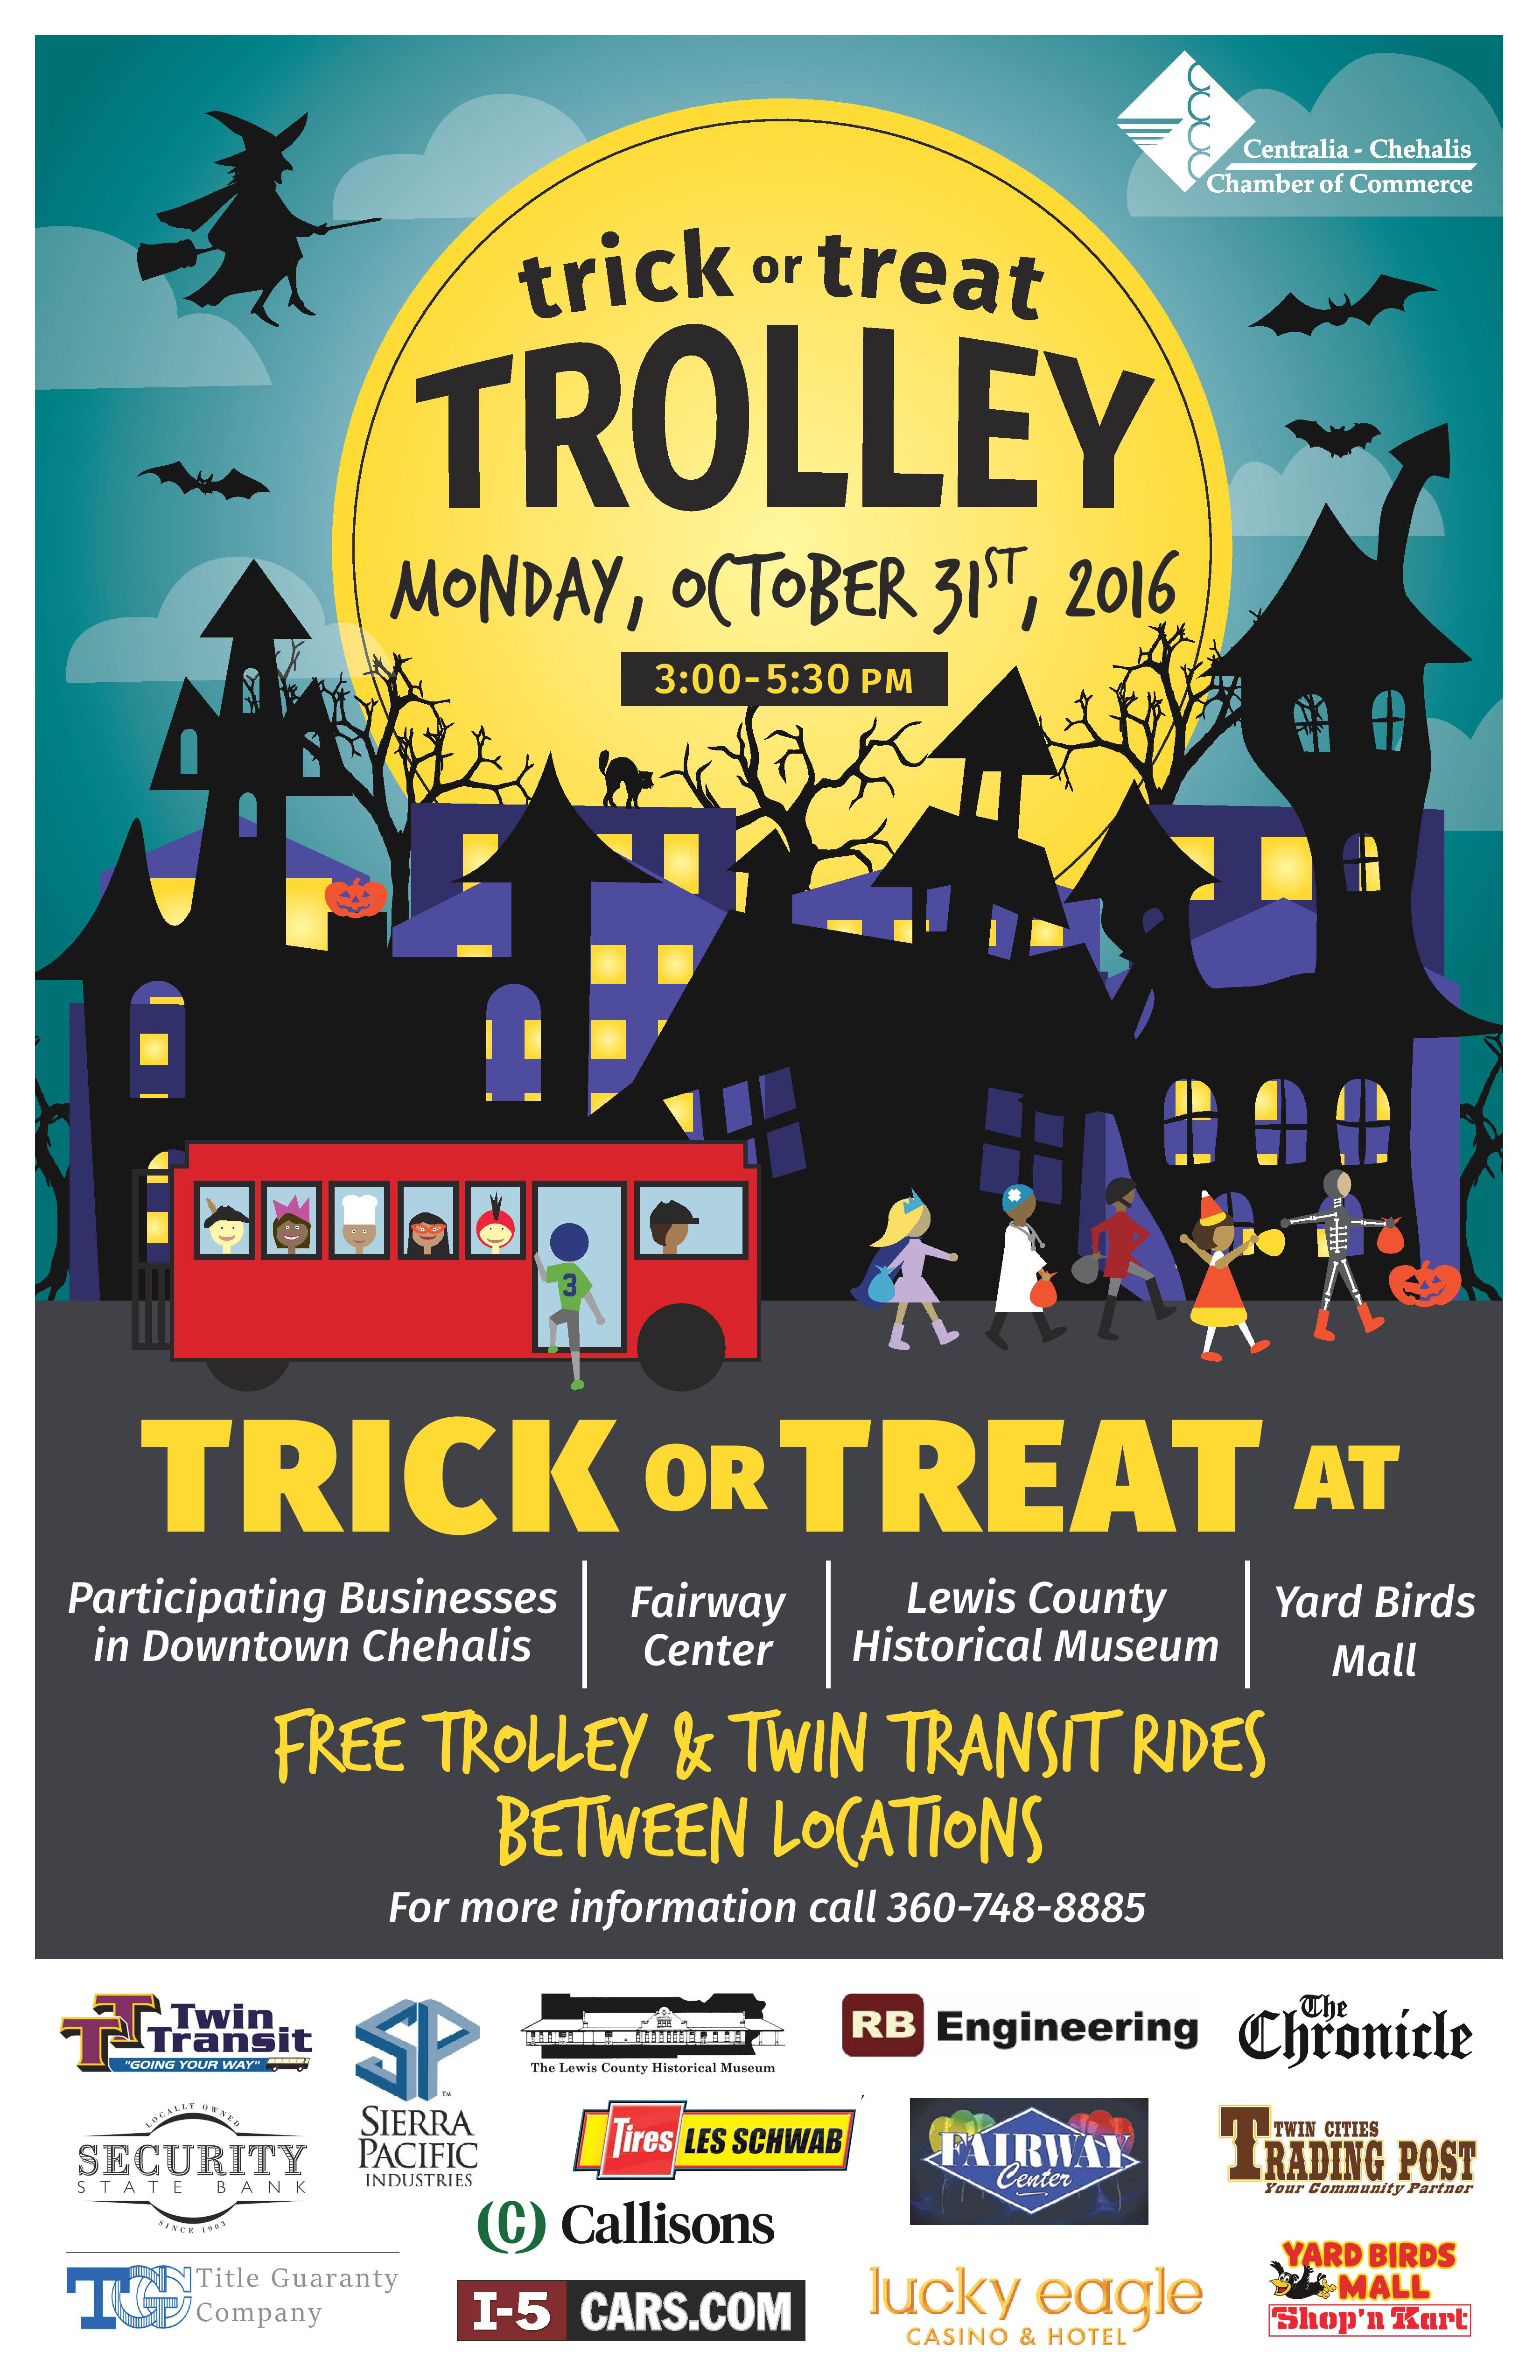 trickortreattrolley_poster_2016-page-001